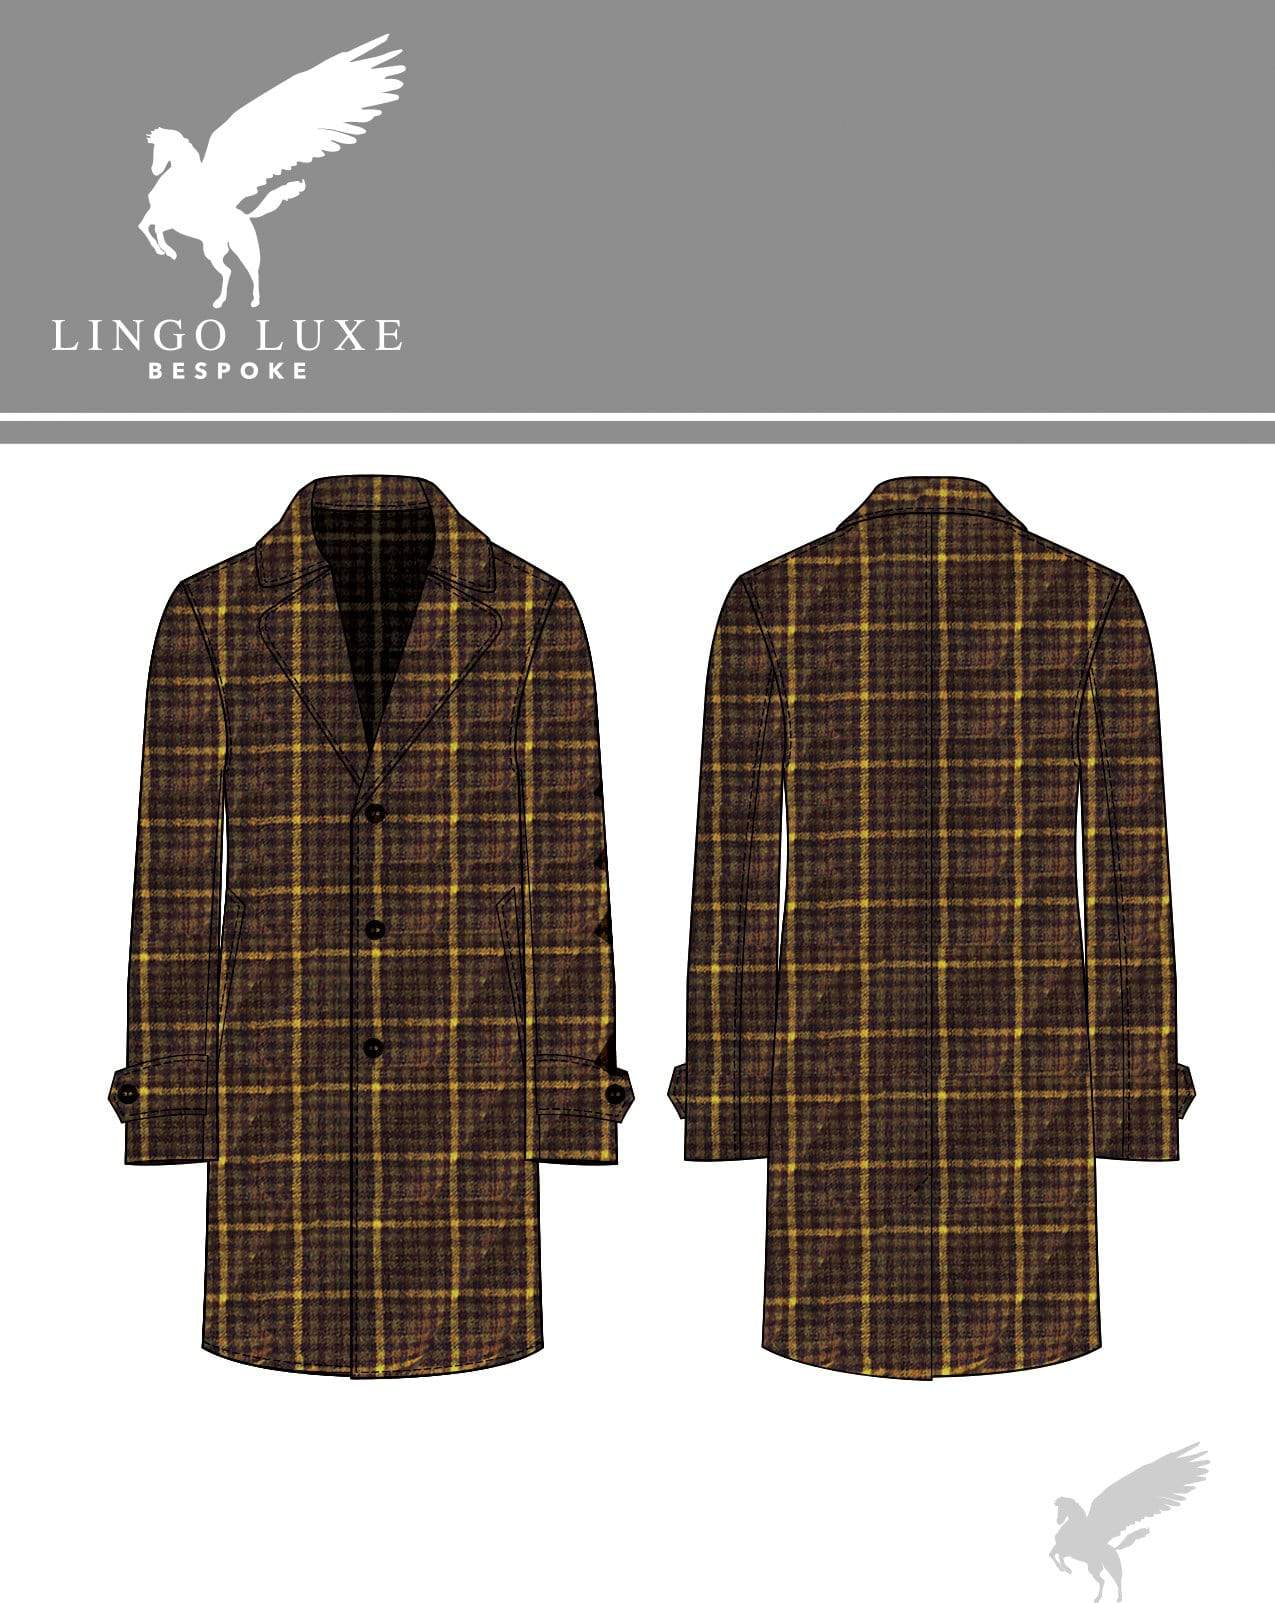 Outerwear | Lingo Luxe The Stately Overcoat | Golden Brown Cake-Lingo Luxe Bespoke